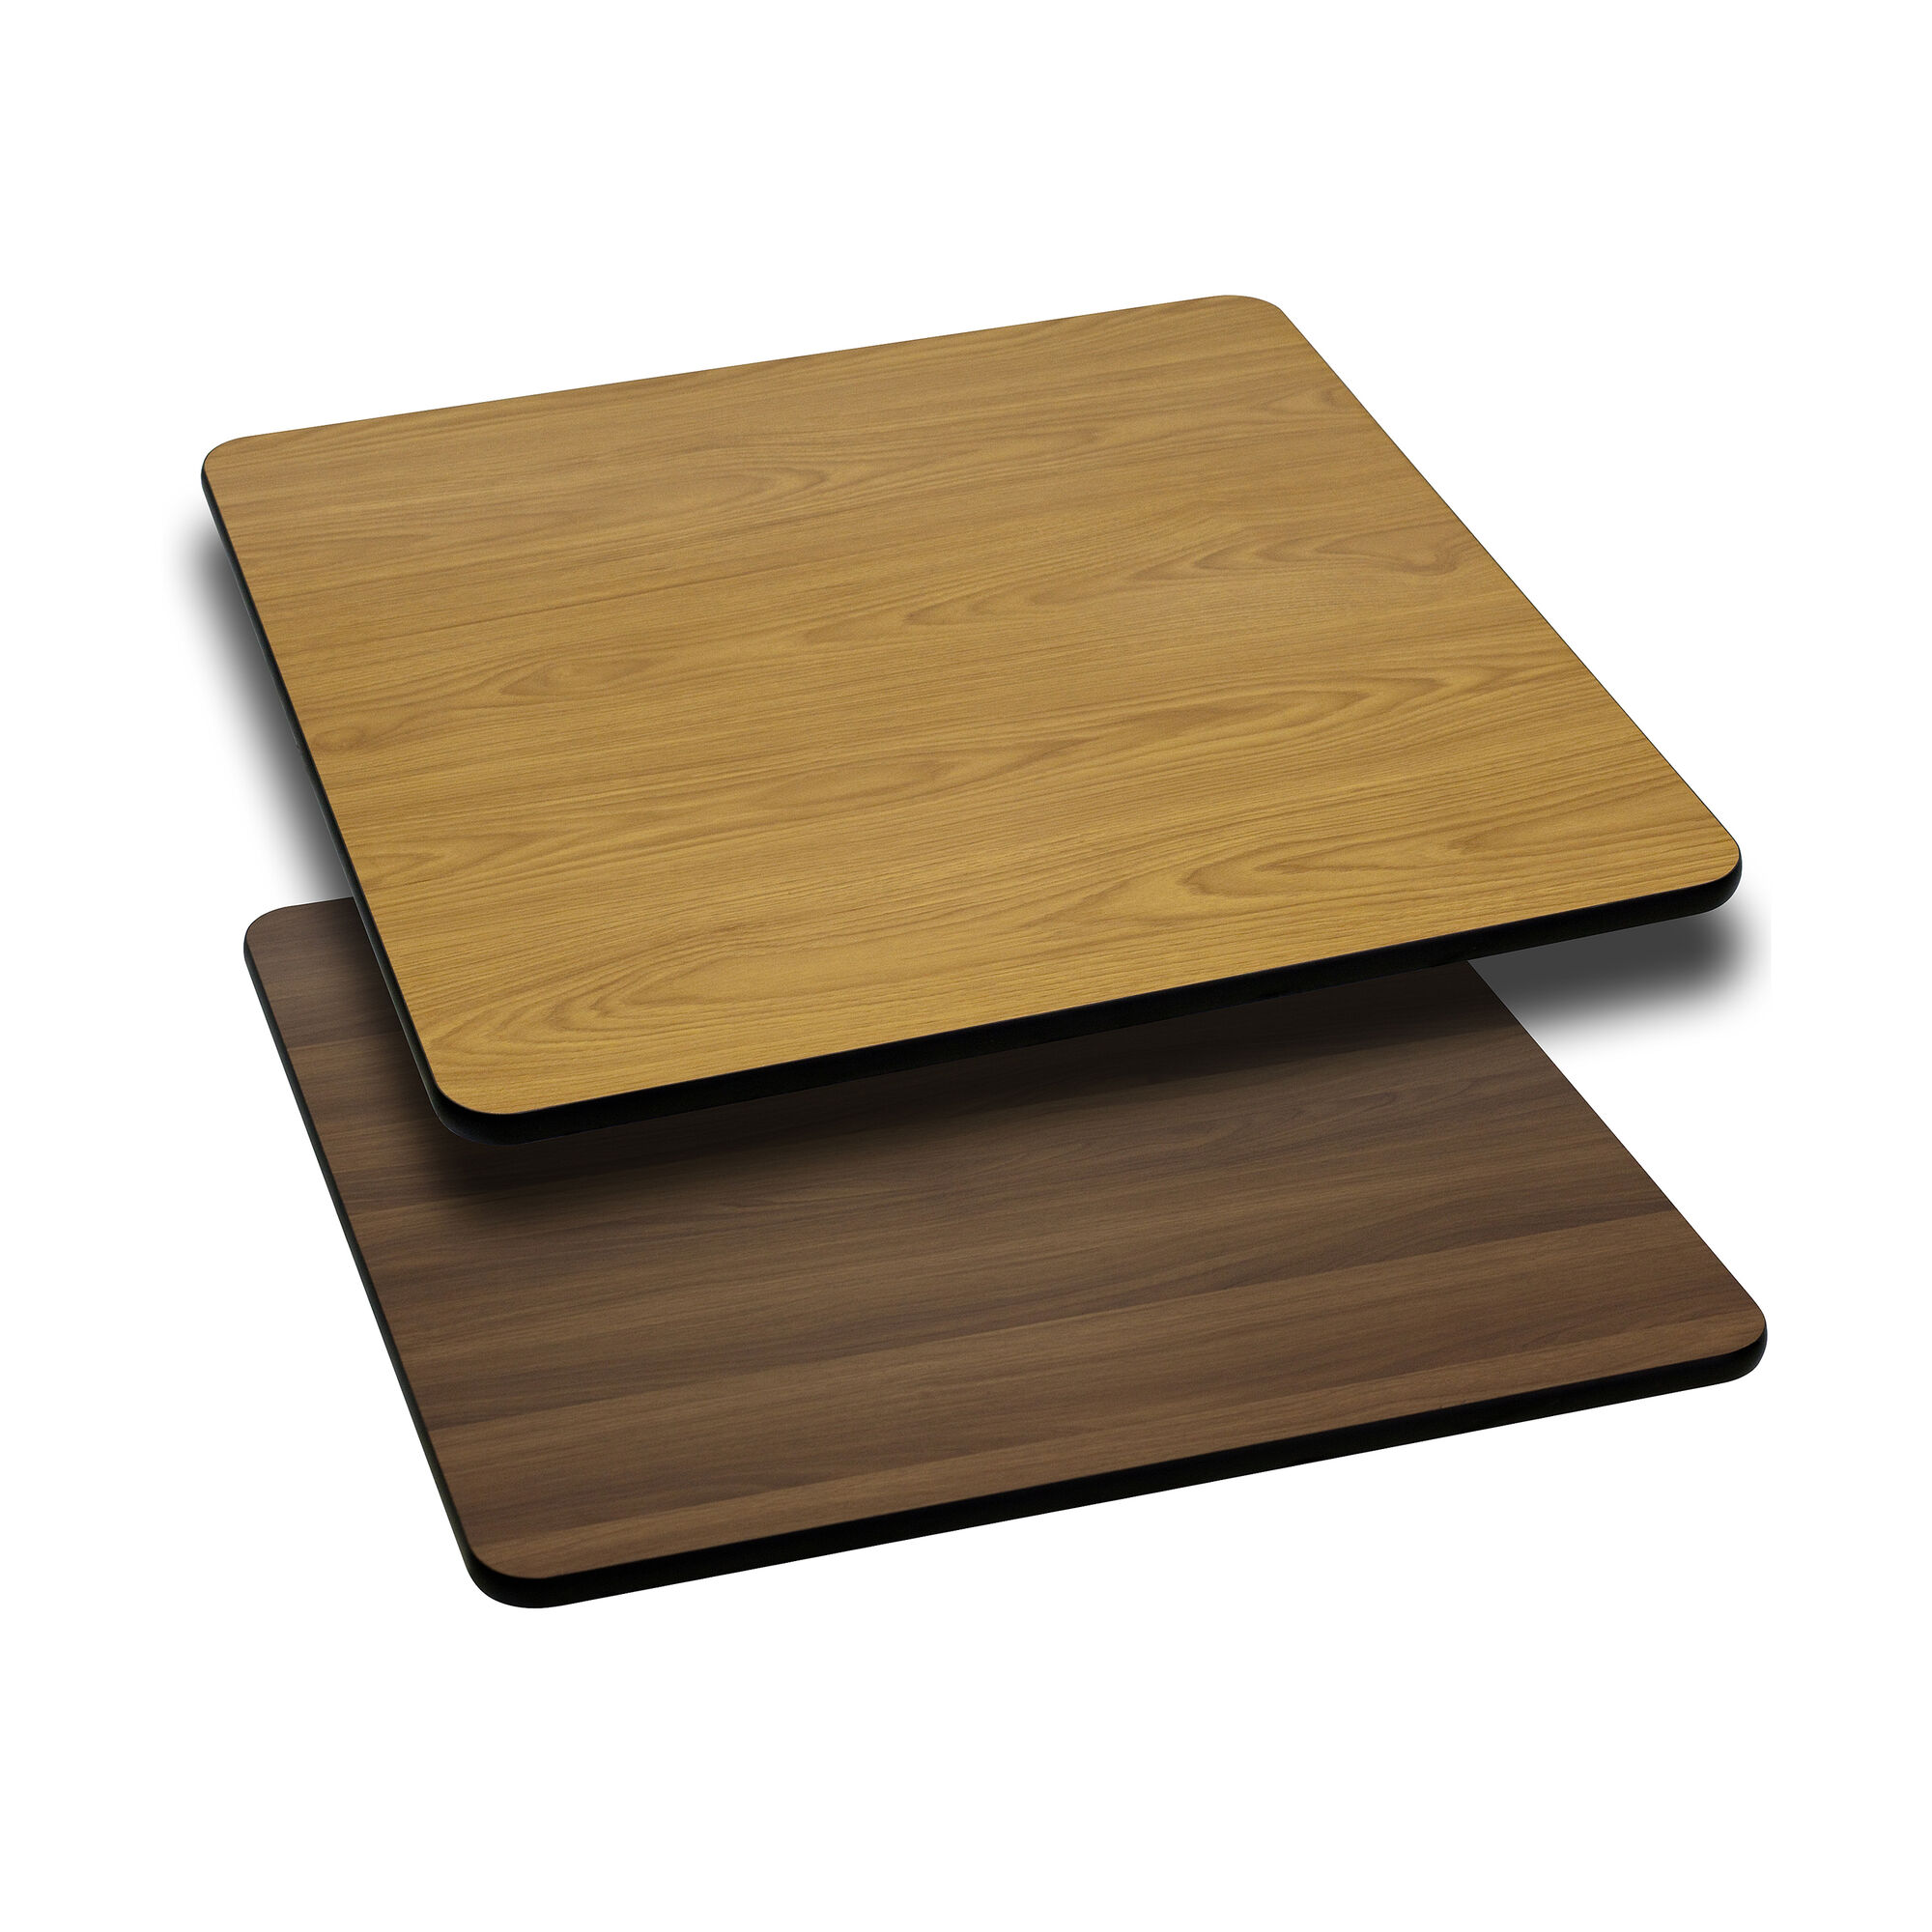 RestaurantFurnitureLess Restaurant Tables - Restaurant table organizers